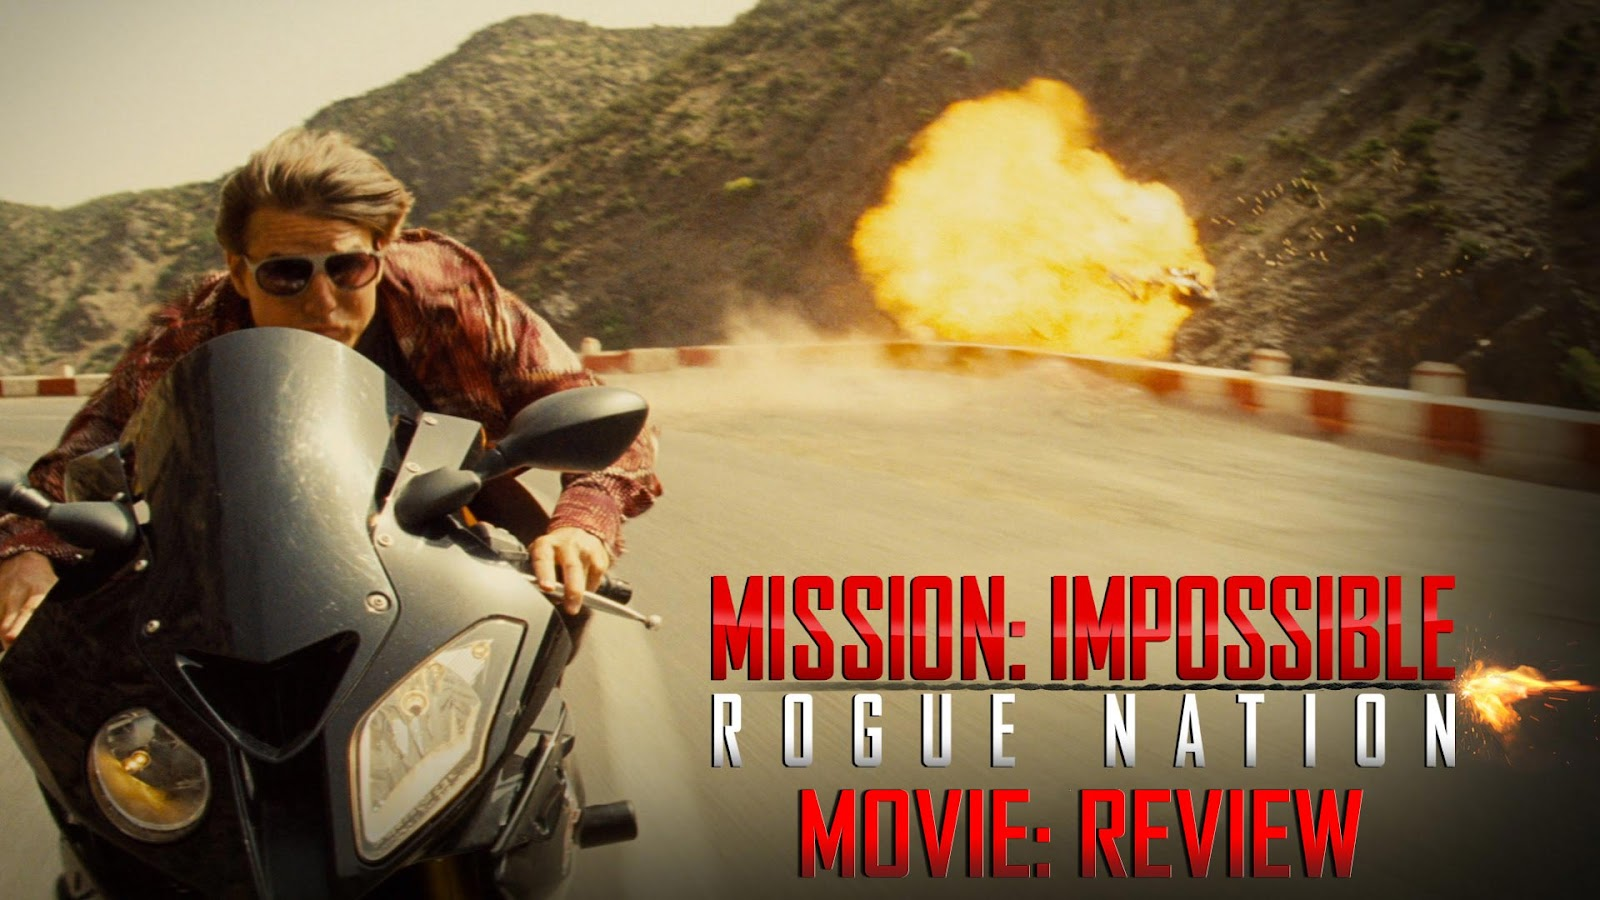 movie review Mission: Impossible - Rogue Nation podcast